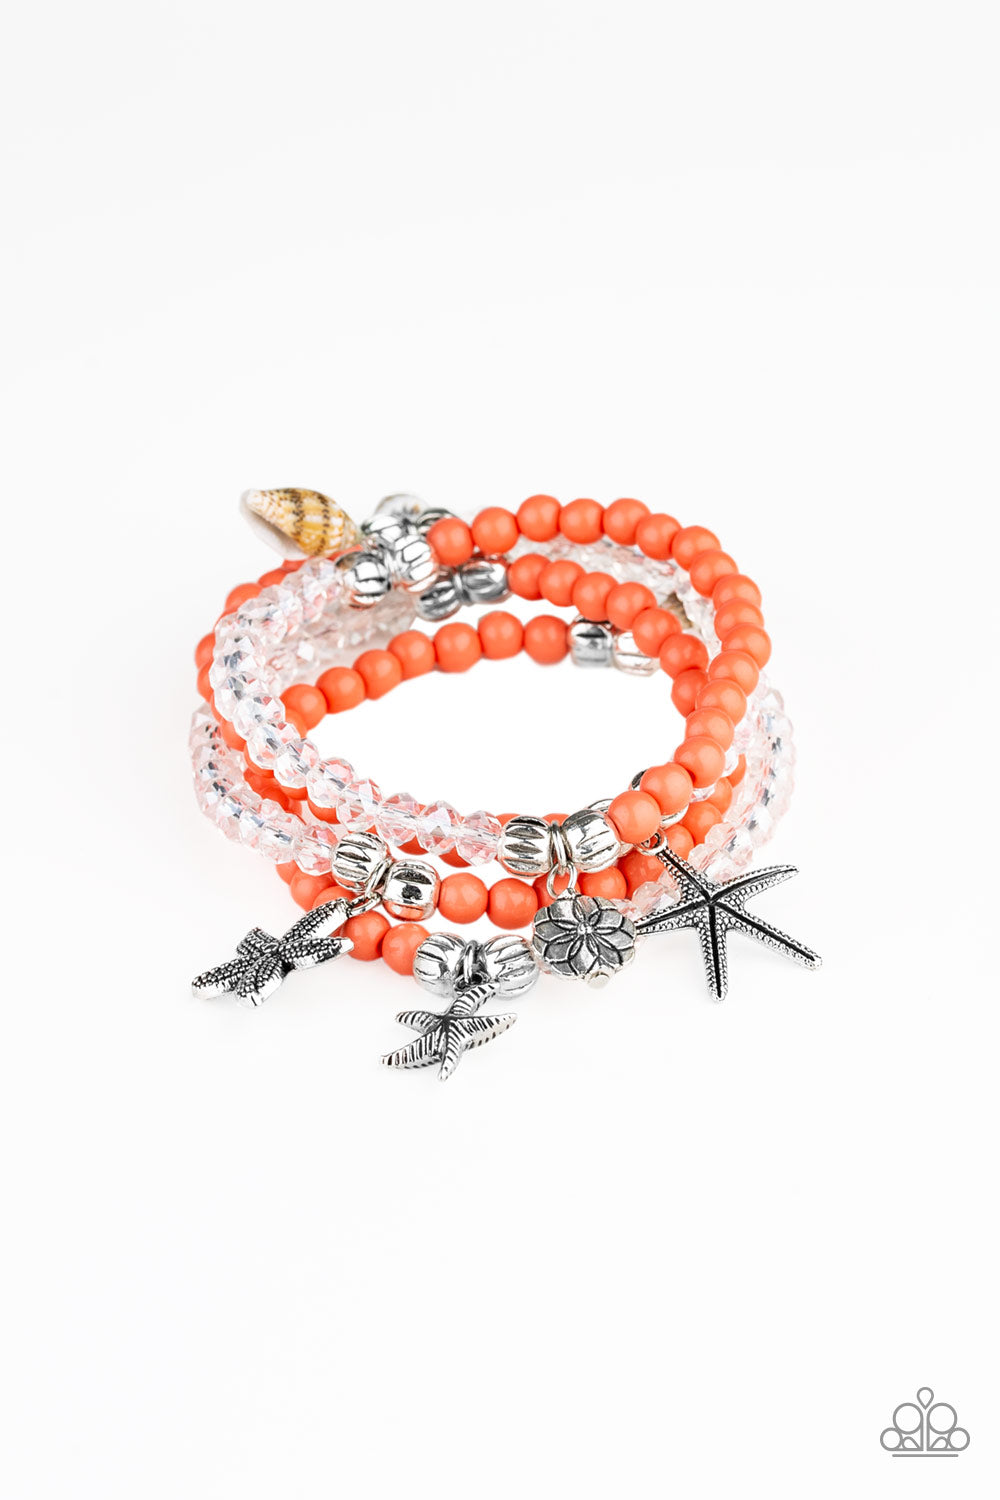 Paparazzi Accessories - Ocean Breeze - Orange Bracelets - JMJ Jewelry Collection